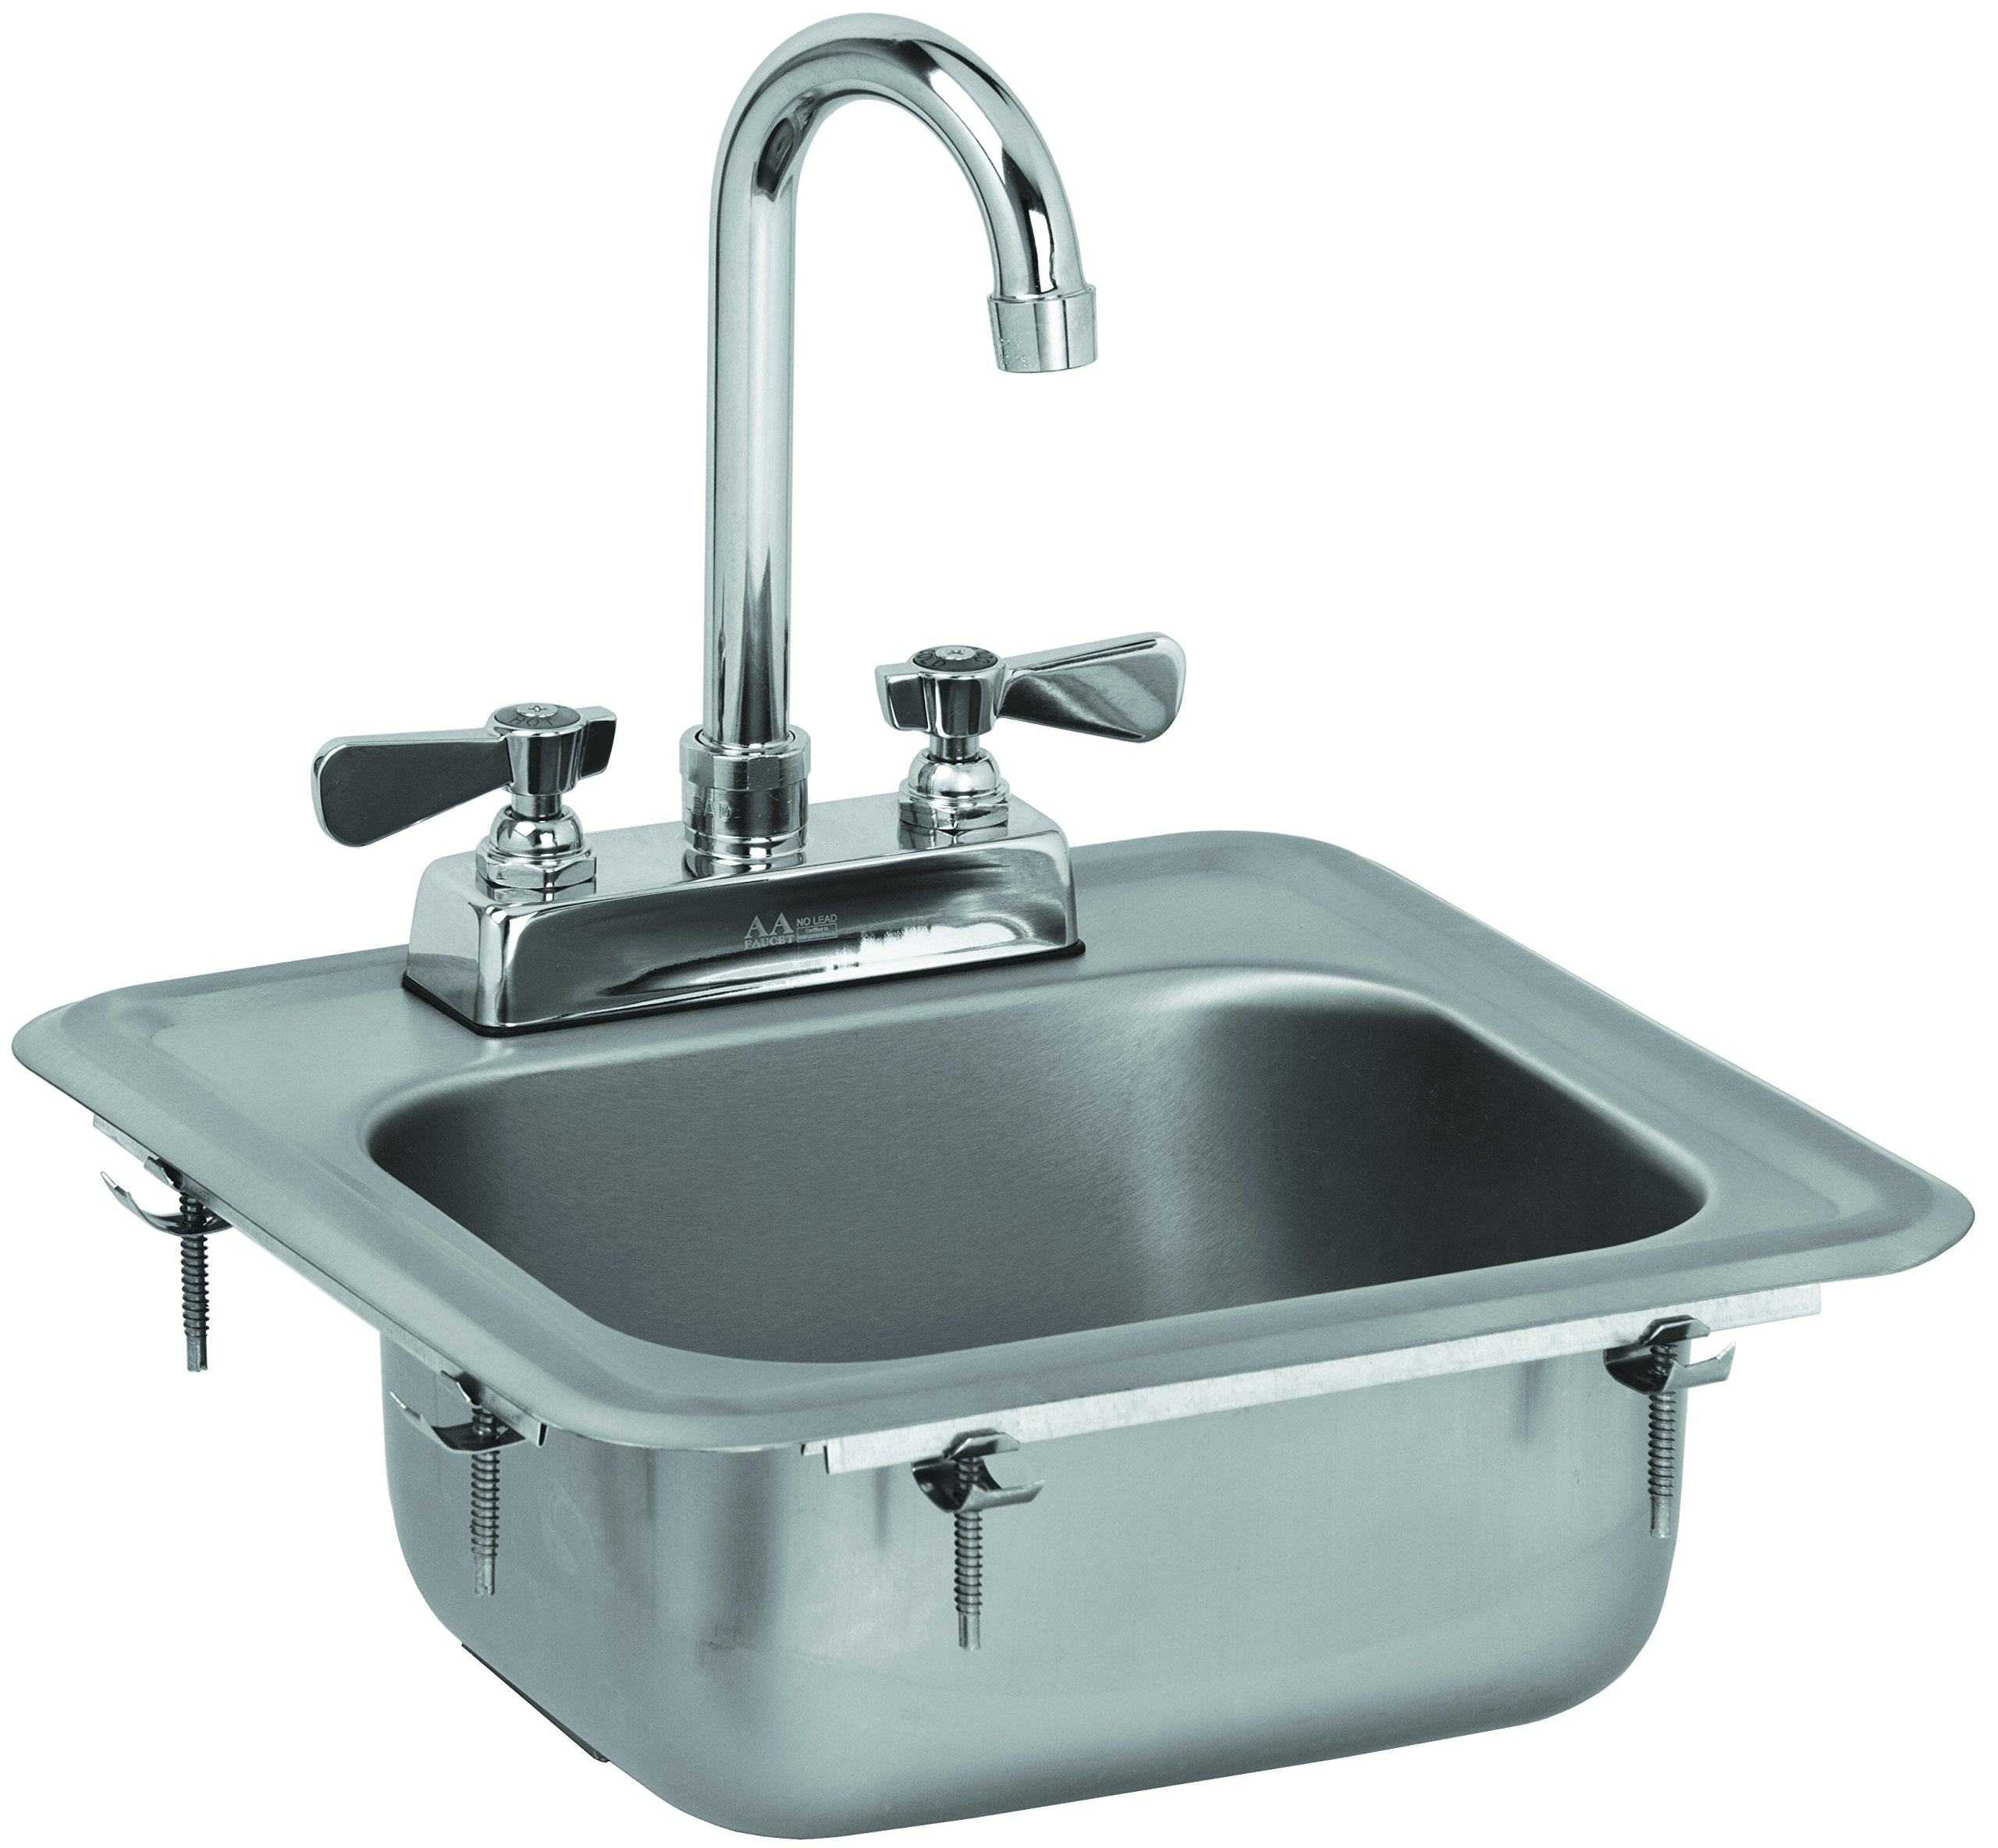 ACE HS-0810IG Mini 13'' x 13'' Drop-In Hand Sink with Lead Free 6'' Spout Faucet & Strainer, ETL Certified by ACE